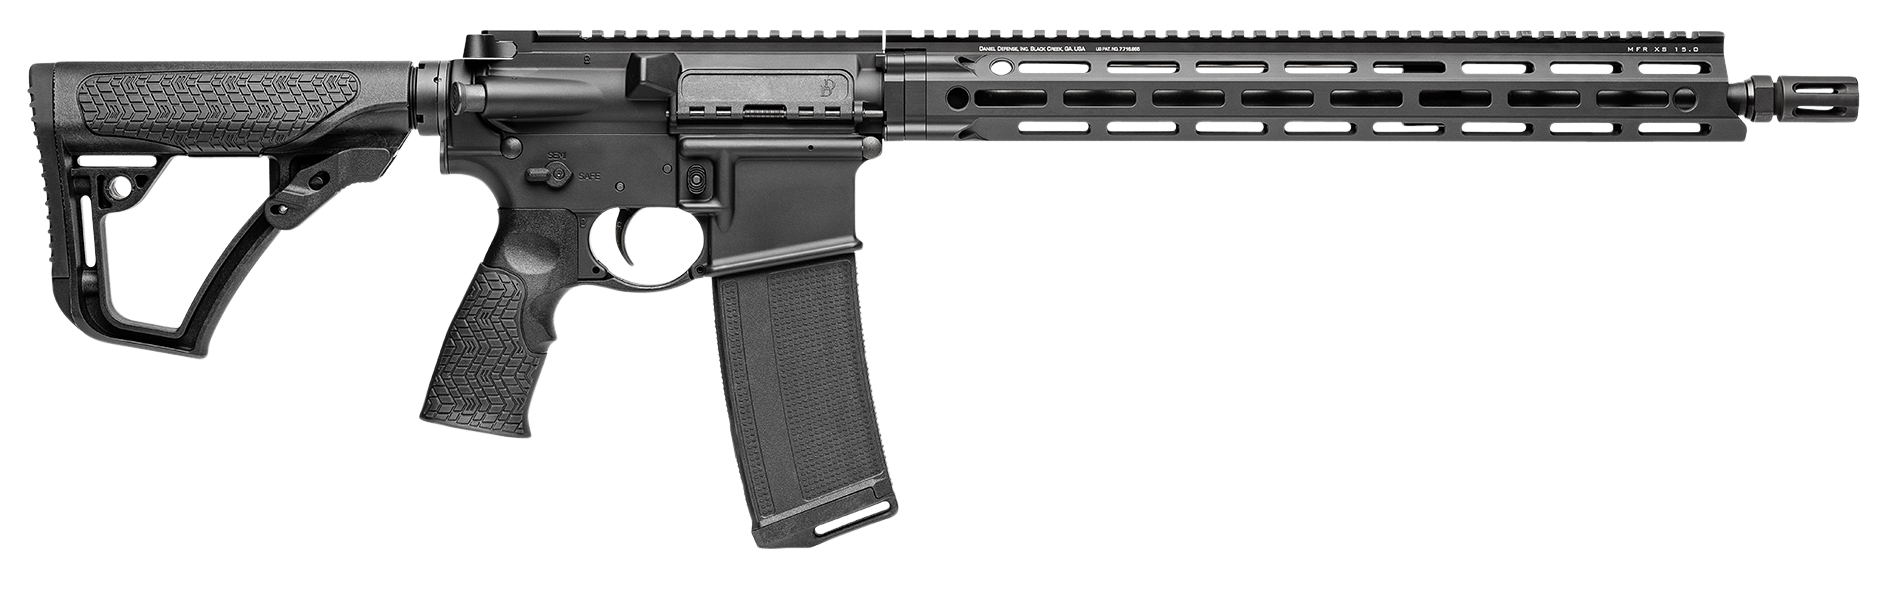 Daniel Defense 02241047 DDM4 V7 LW Semi-Automatic 223 Remington/5.56 NATO 16